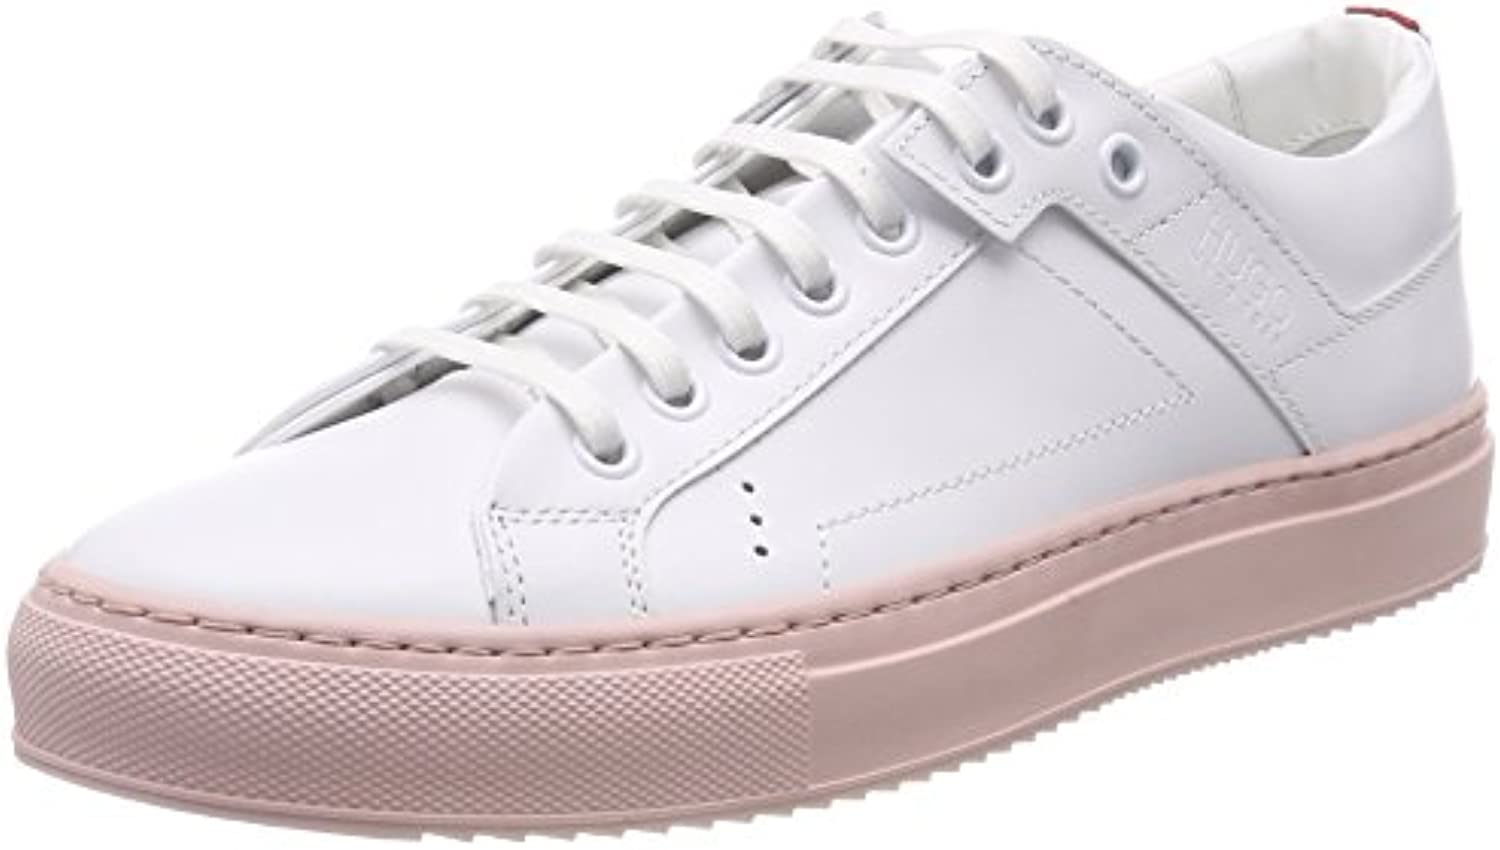 HUGO HUGO HUGO Hackney Low Cut, Sneakers Basses FemmeB079XK5D4WParent | En Vente